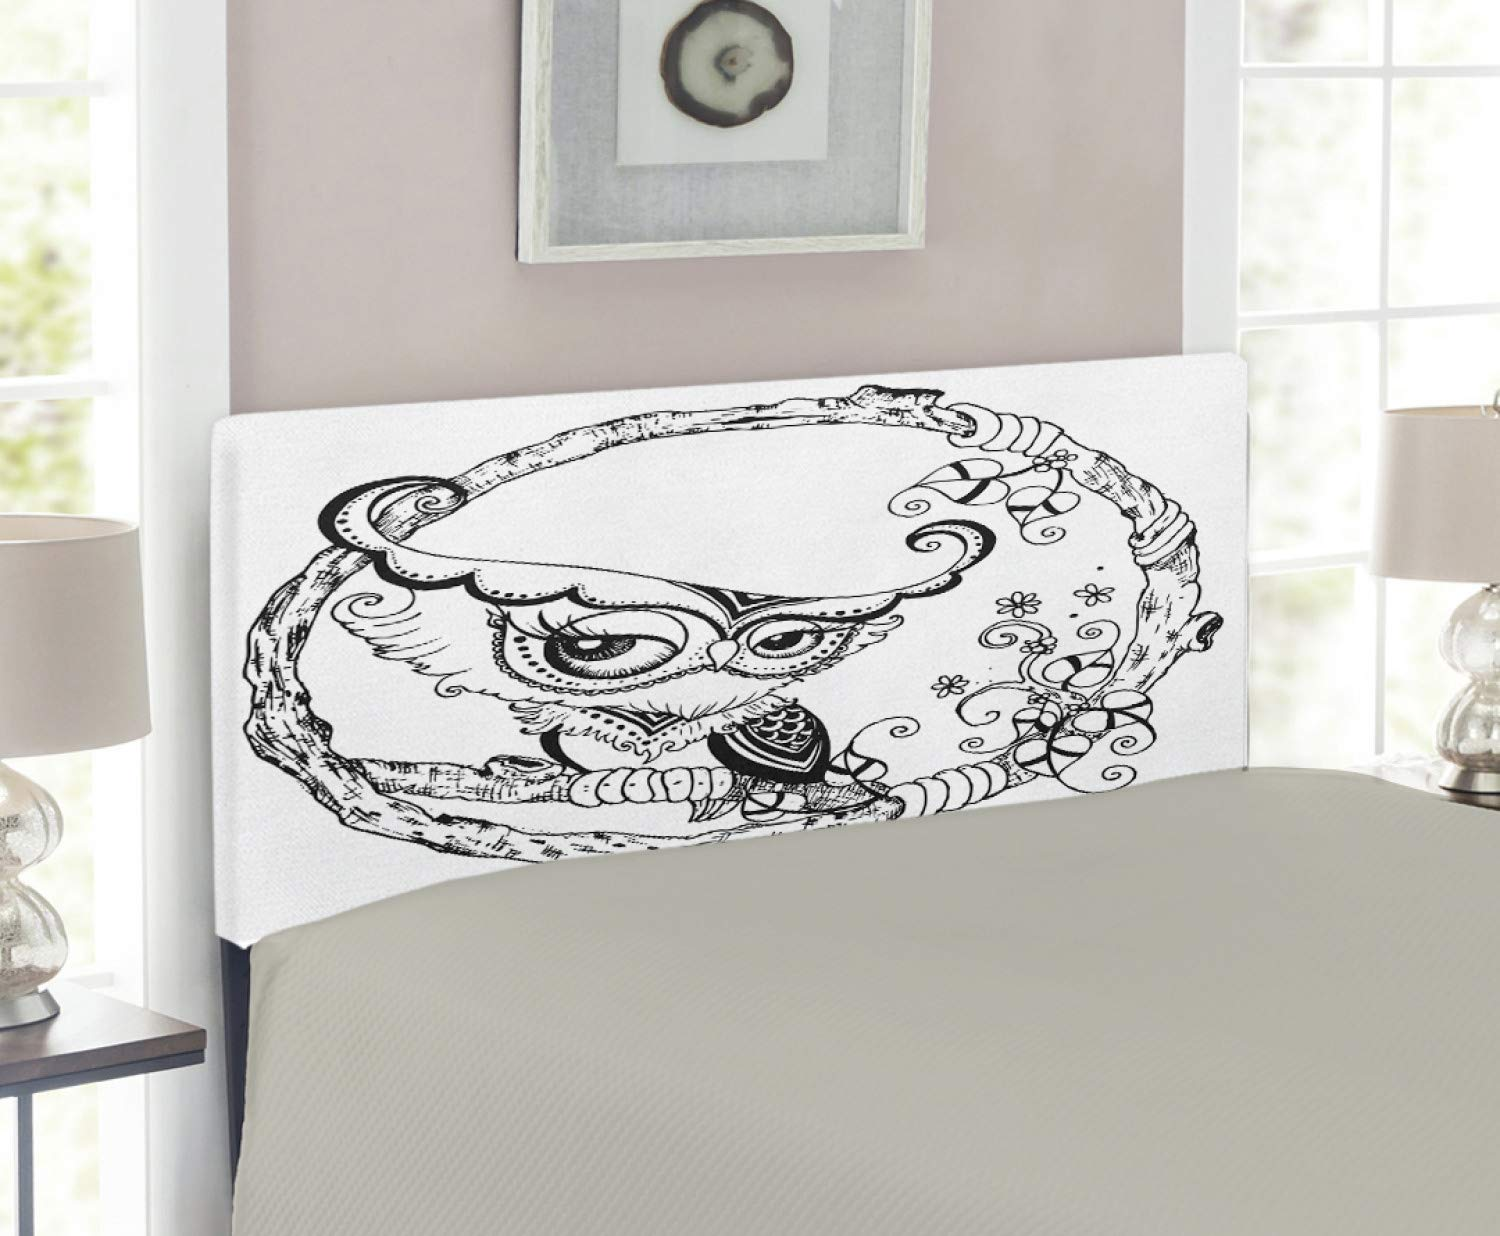 quality design ca02b 6cda3 Amazon.com - Lunarable Owl Headboard, Romantic Black Bird ...